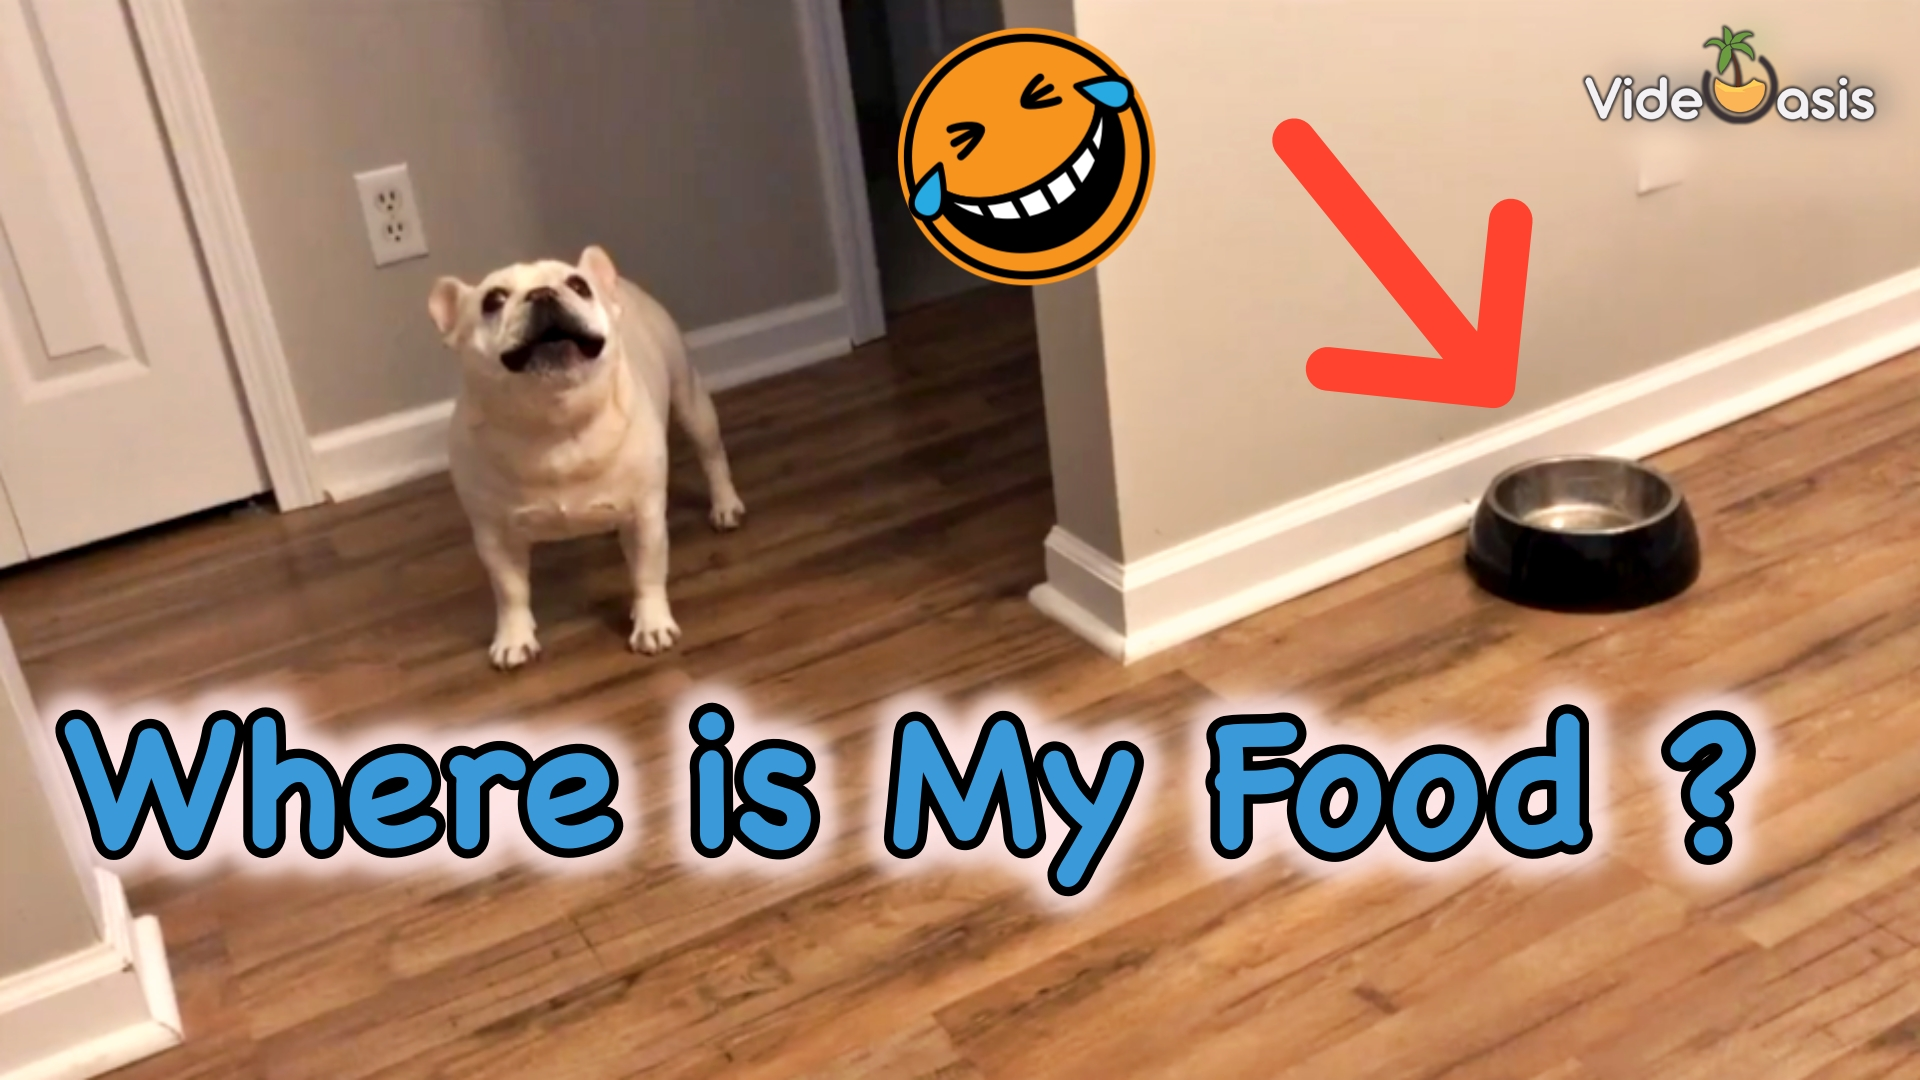 French Bulldog Throws Tantrums for Not Getting Food|VideOasis